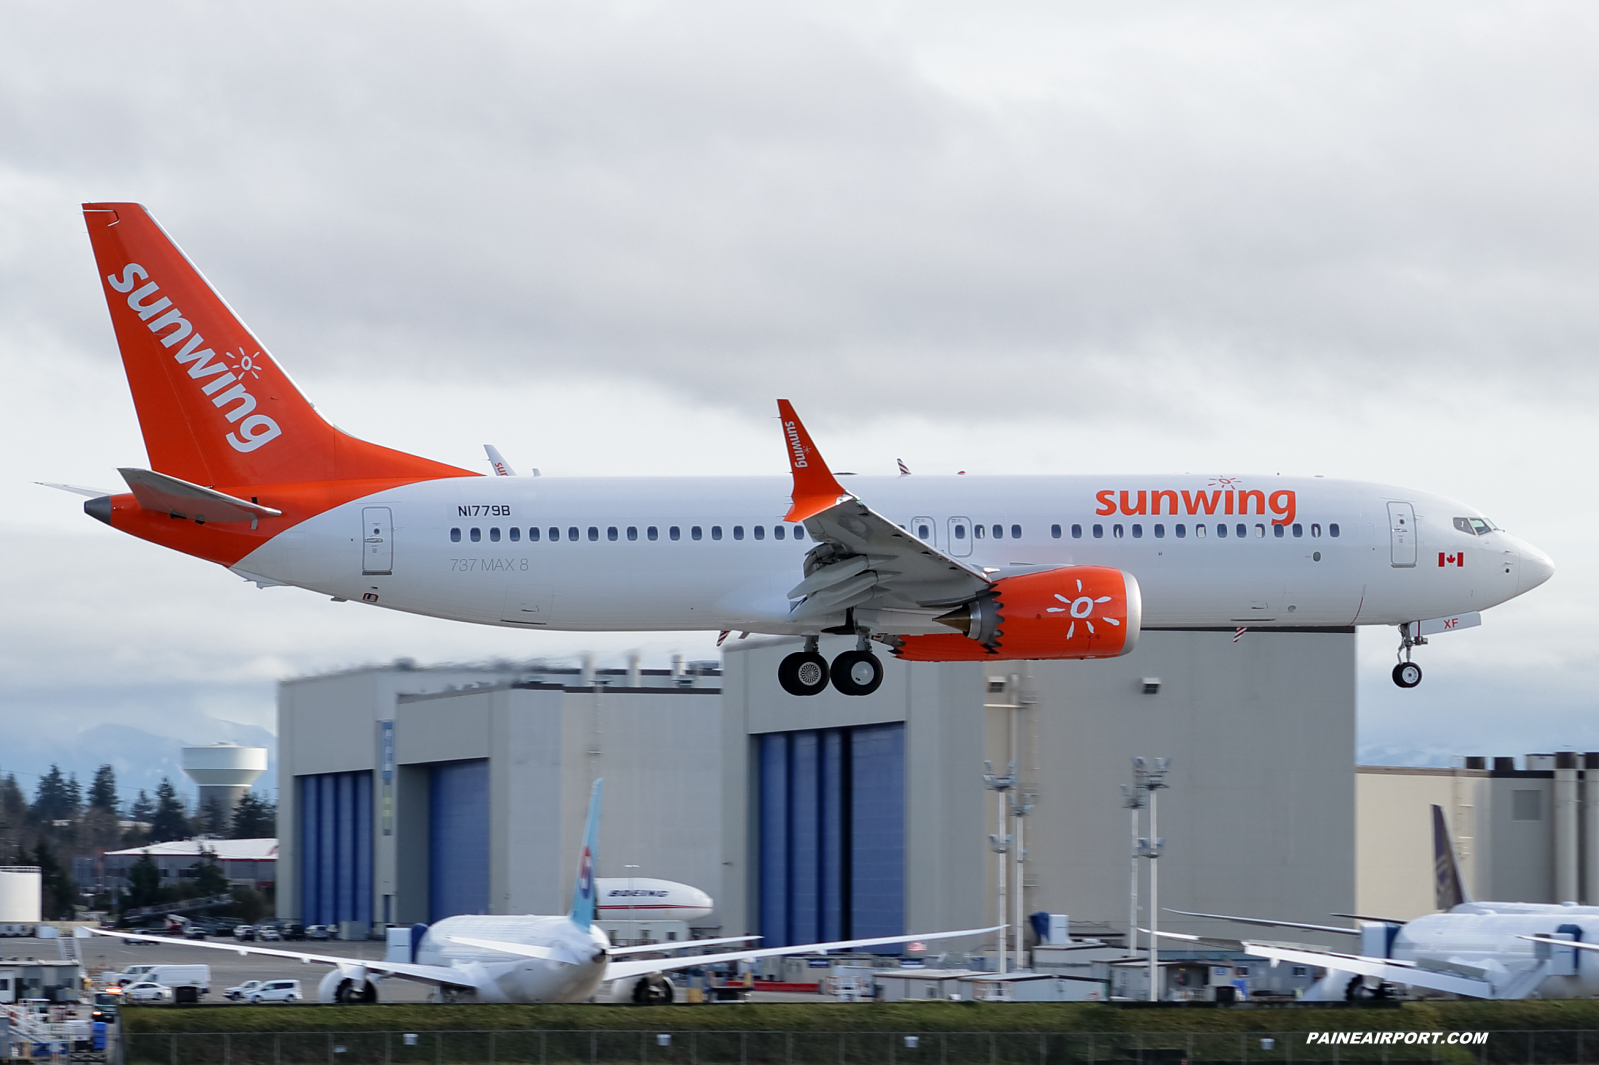 Sunwing 737 N1779B at KPAE Paine Field